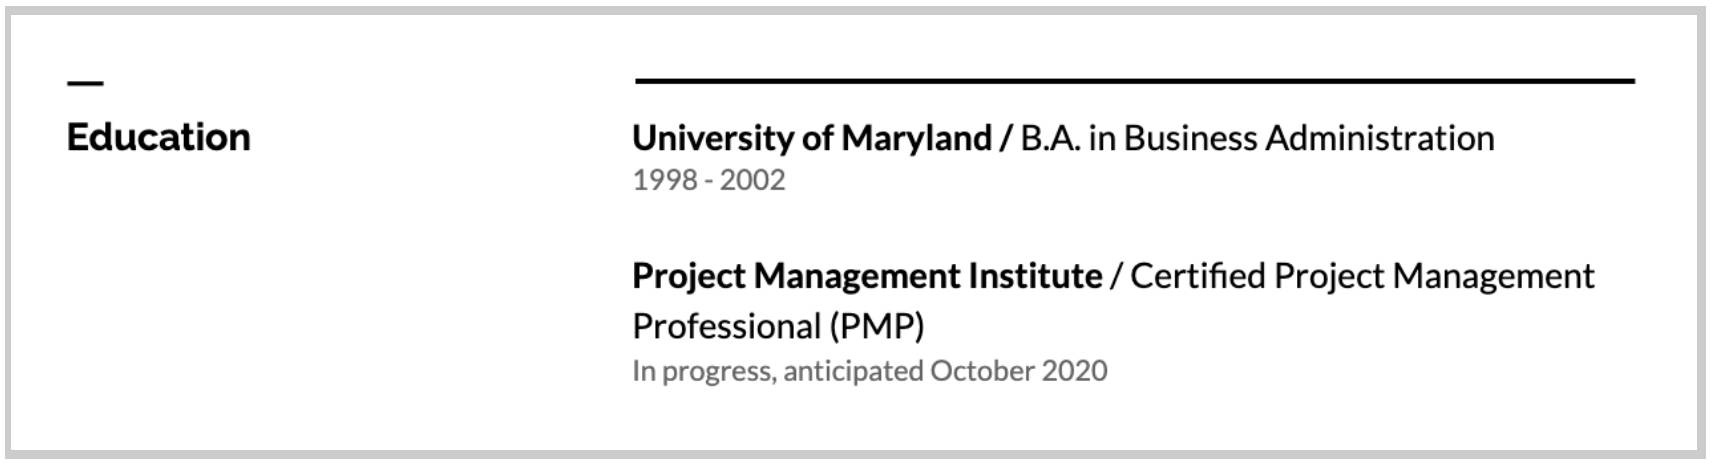 Certification listed in education section example